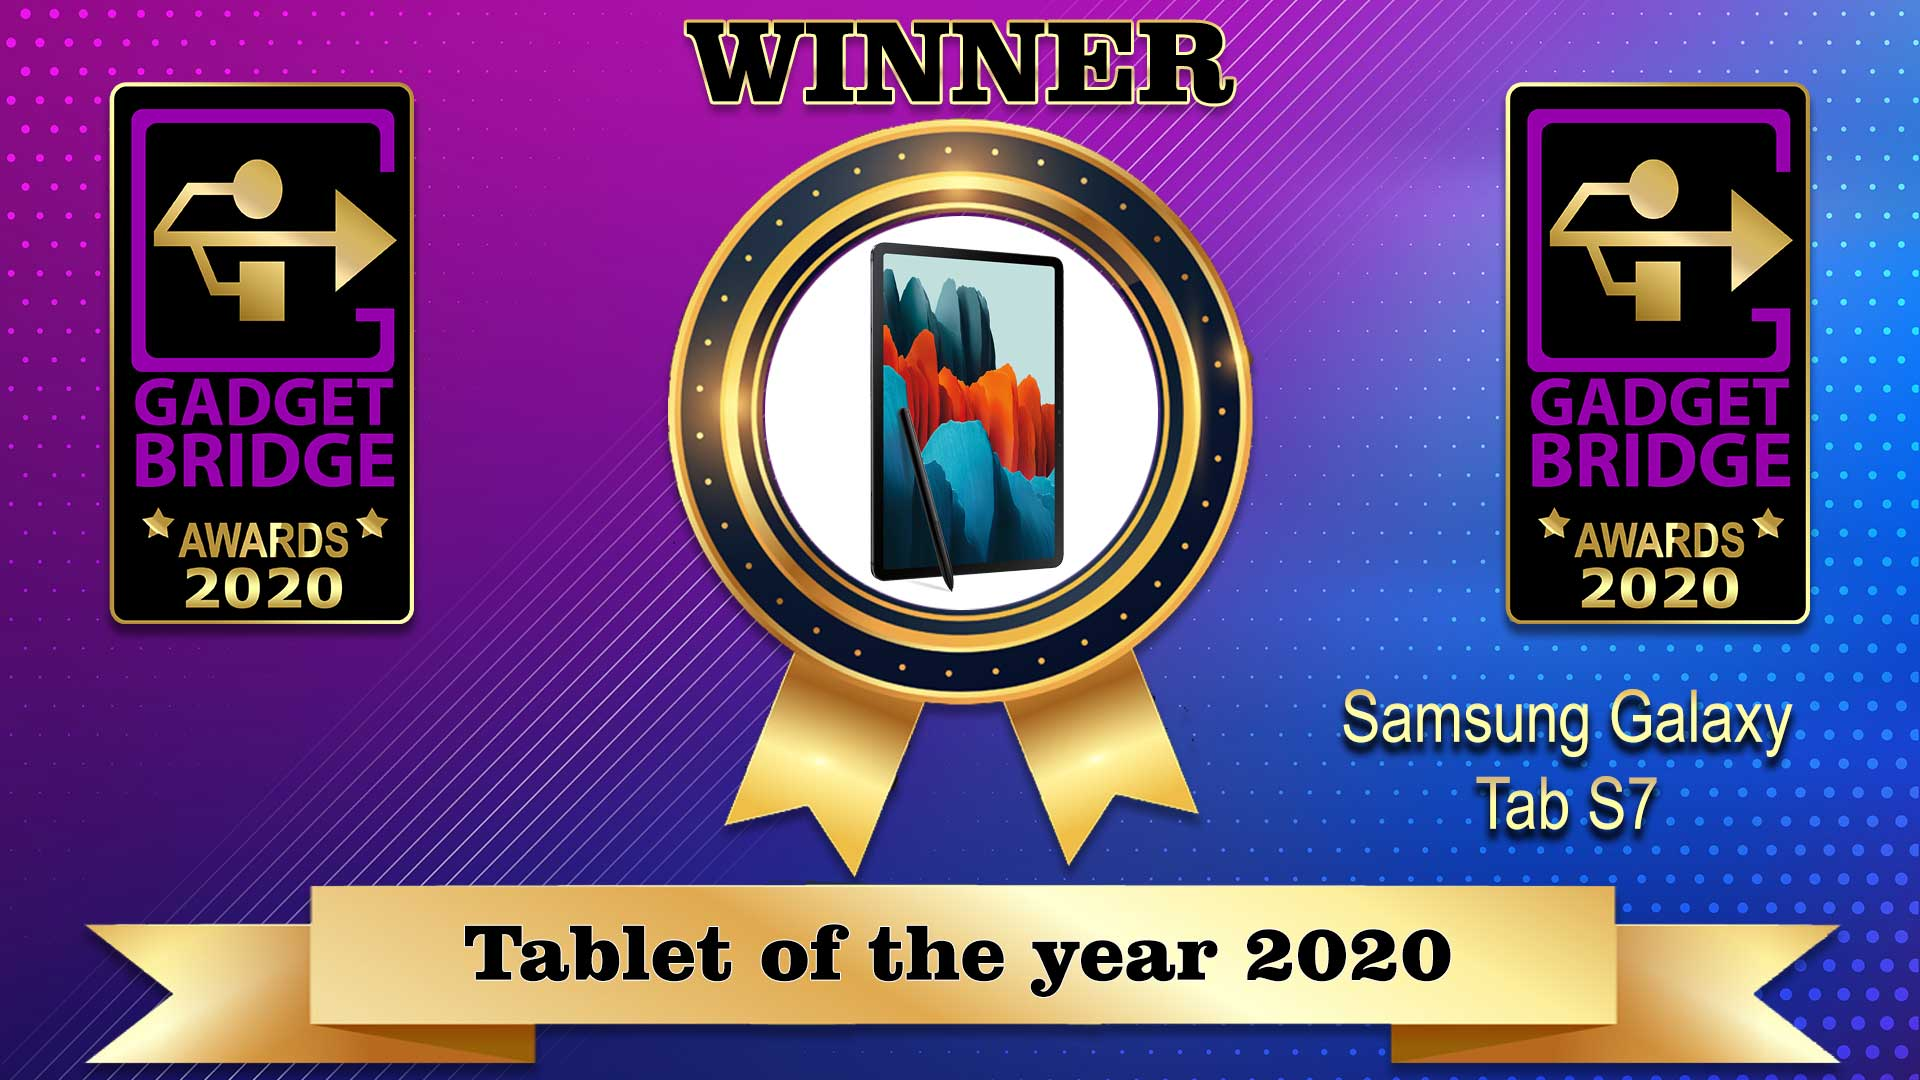 Tablet-of-the-year-2020